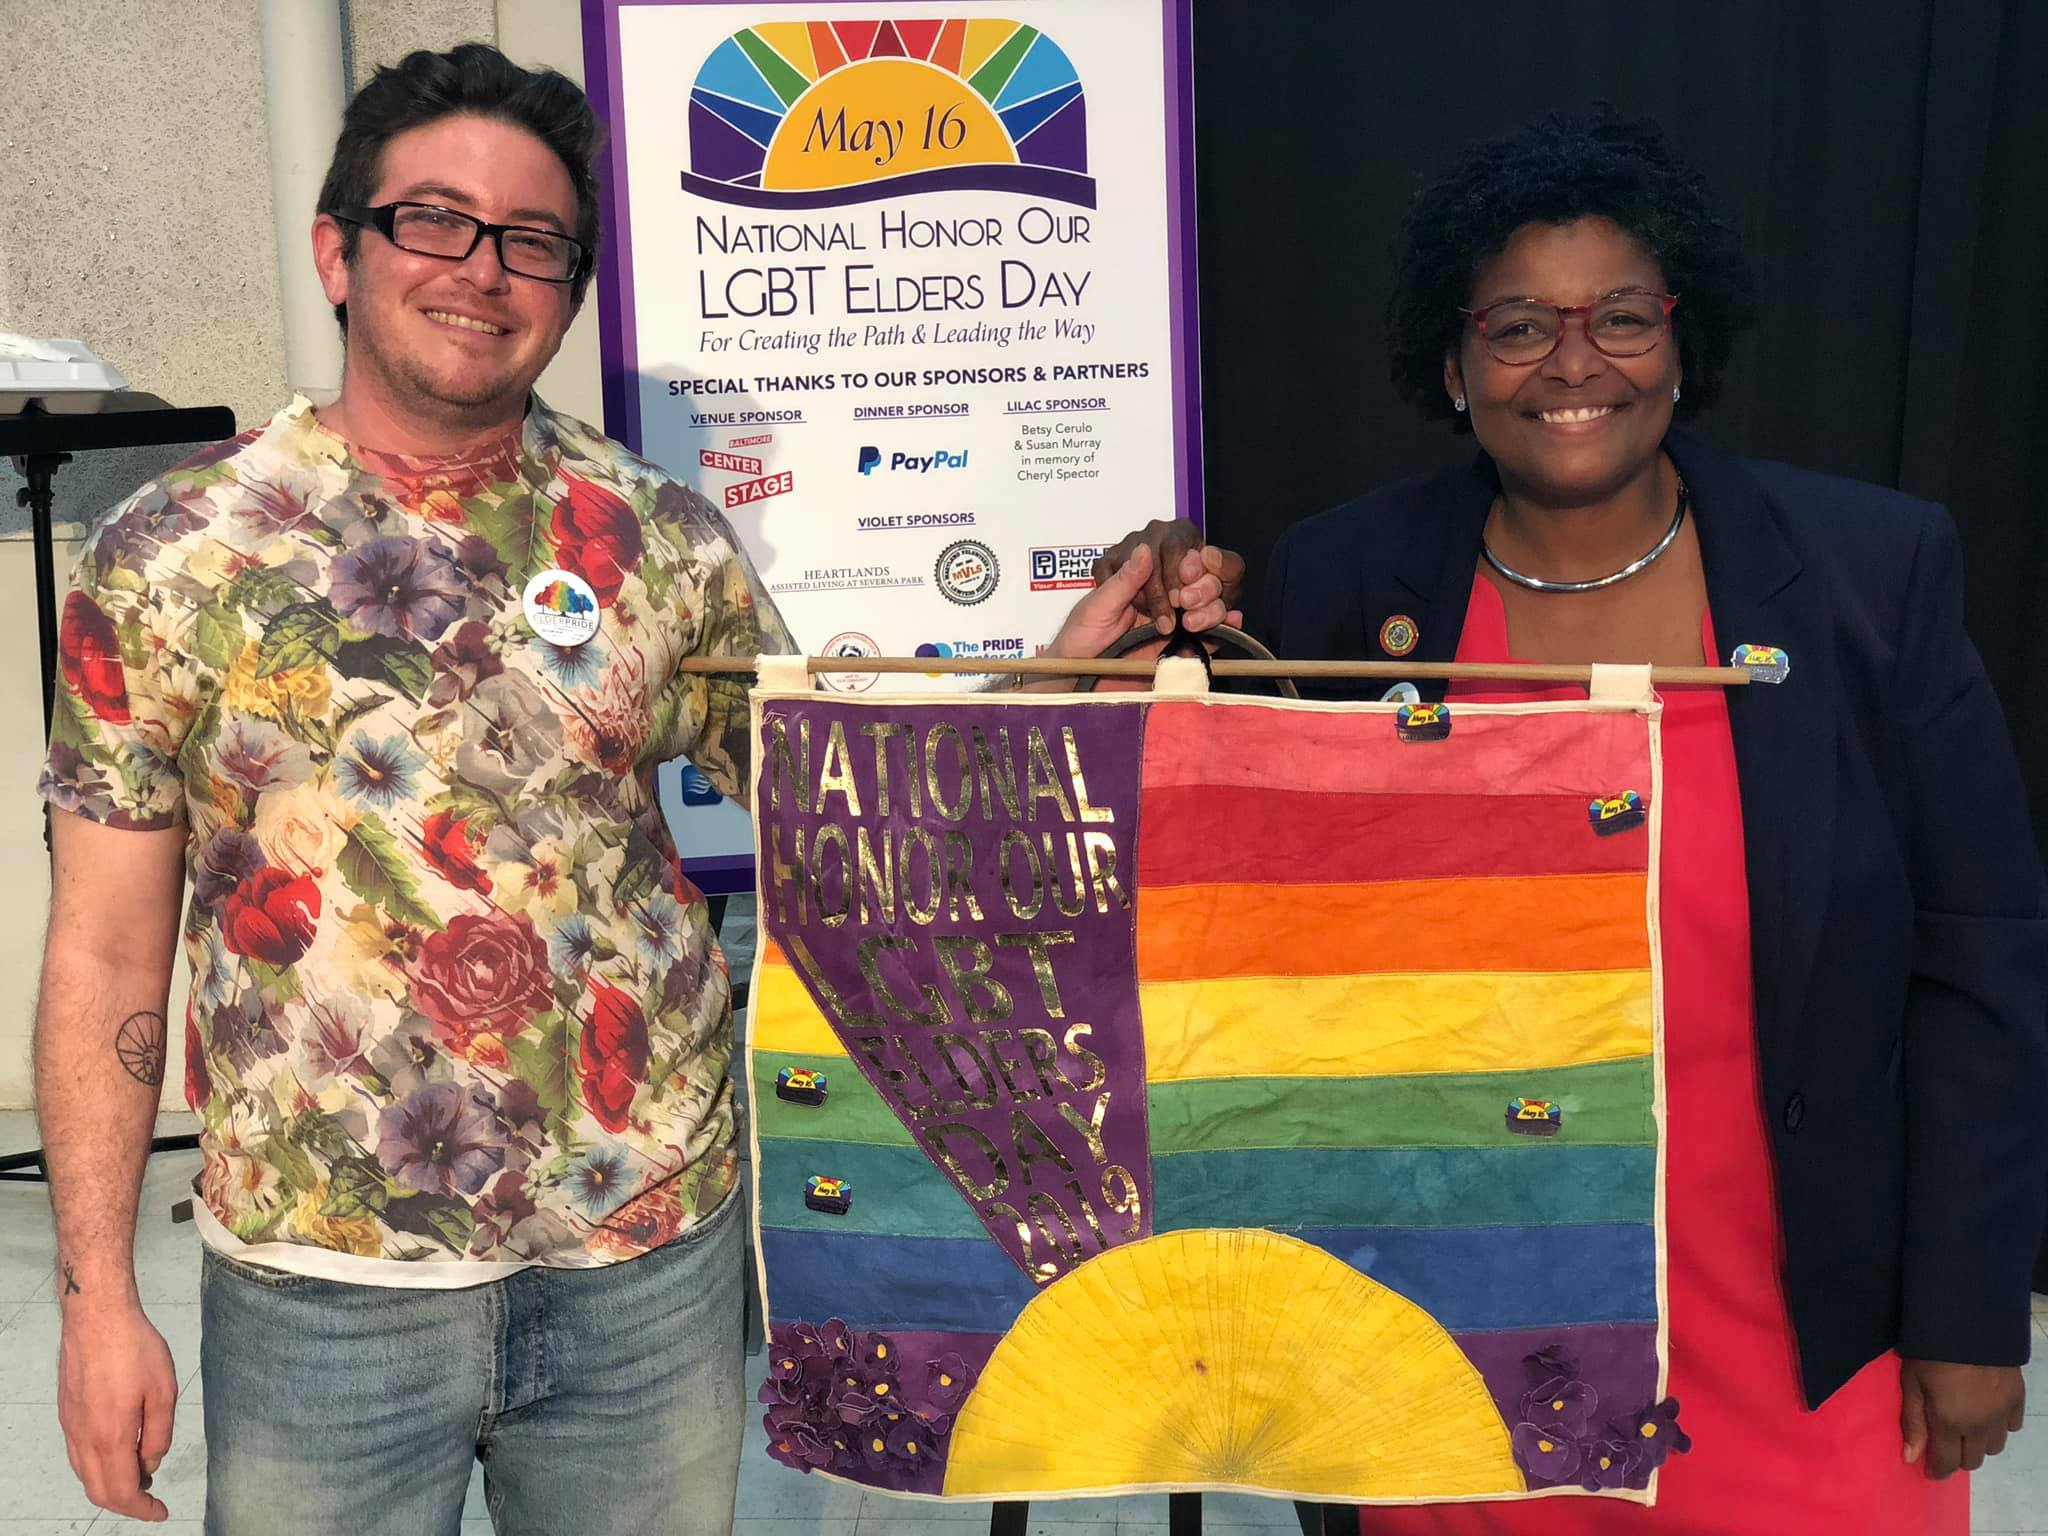 Maryland Senator Mary Washington and Jaimes Mayhew at the 2019 National Honor Our LGBT Elders Day Celebration at Center Stage in Baltimore.